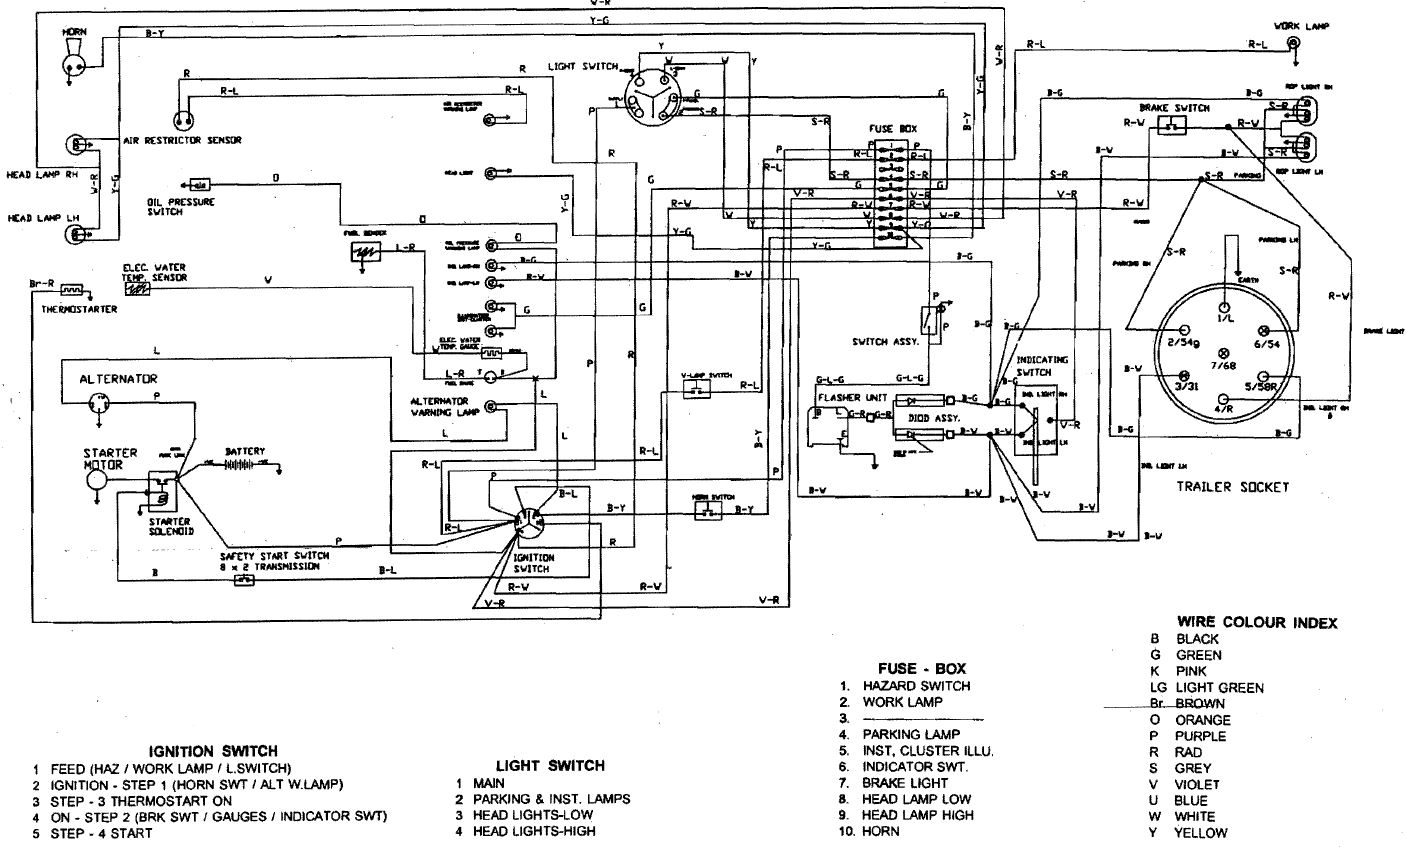 20158463319_b82d524c3d_o ignition switch wiring diagram new holland tractor wire diagram at bakdesigns.co